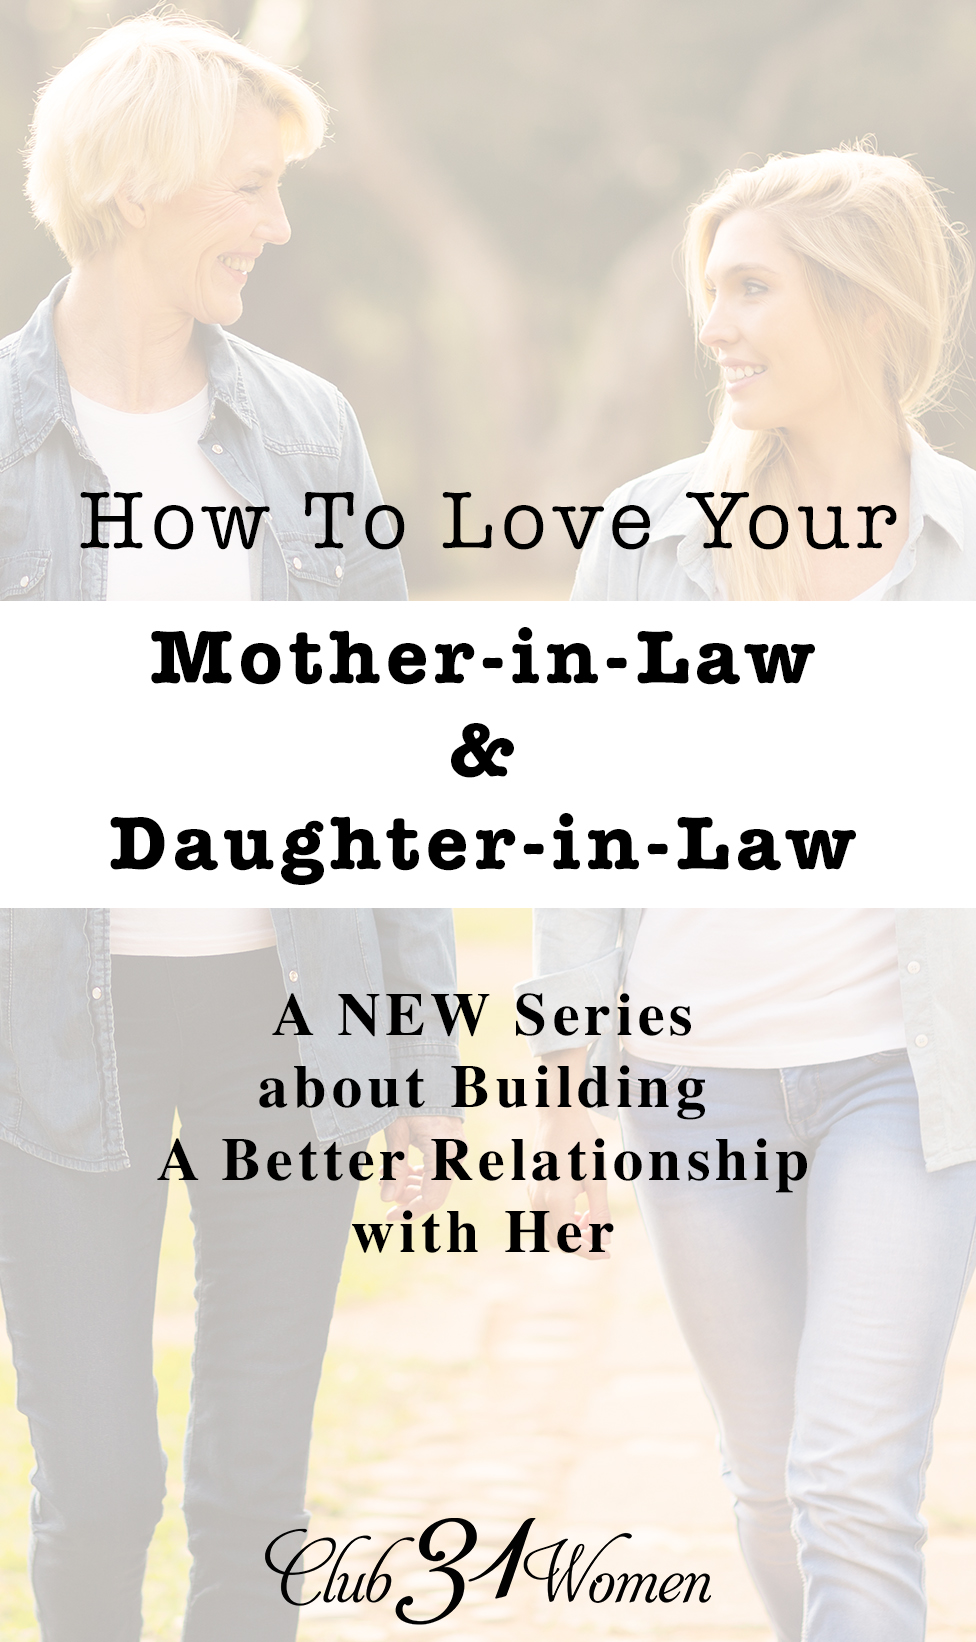 How to Love Your Mother-in-Law and Daughter-in-Law via @Club31Women